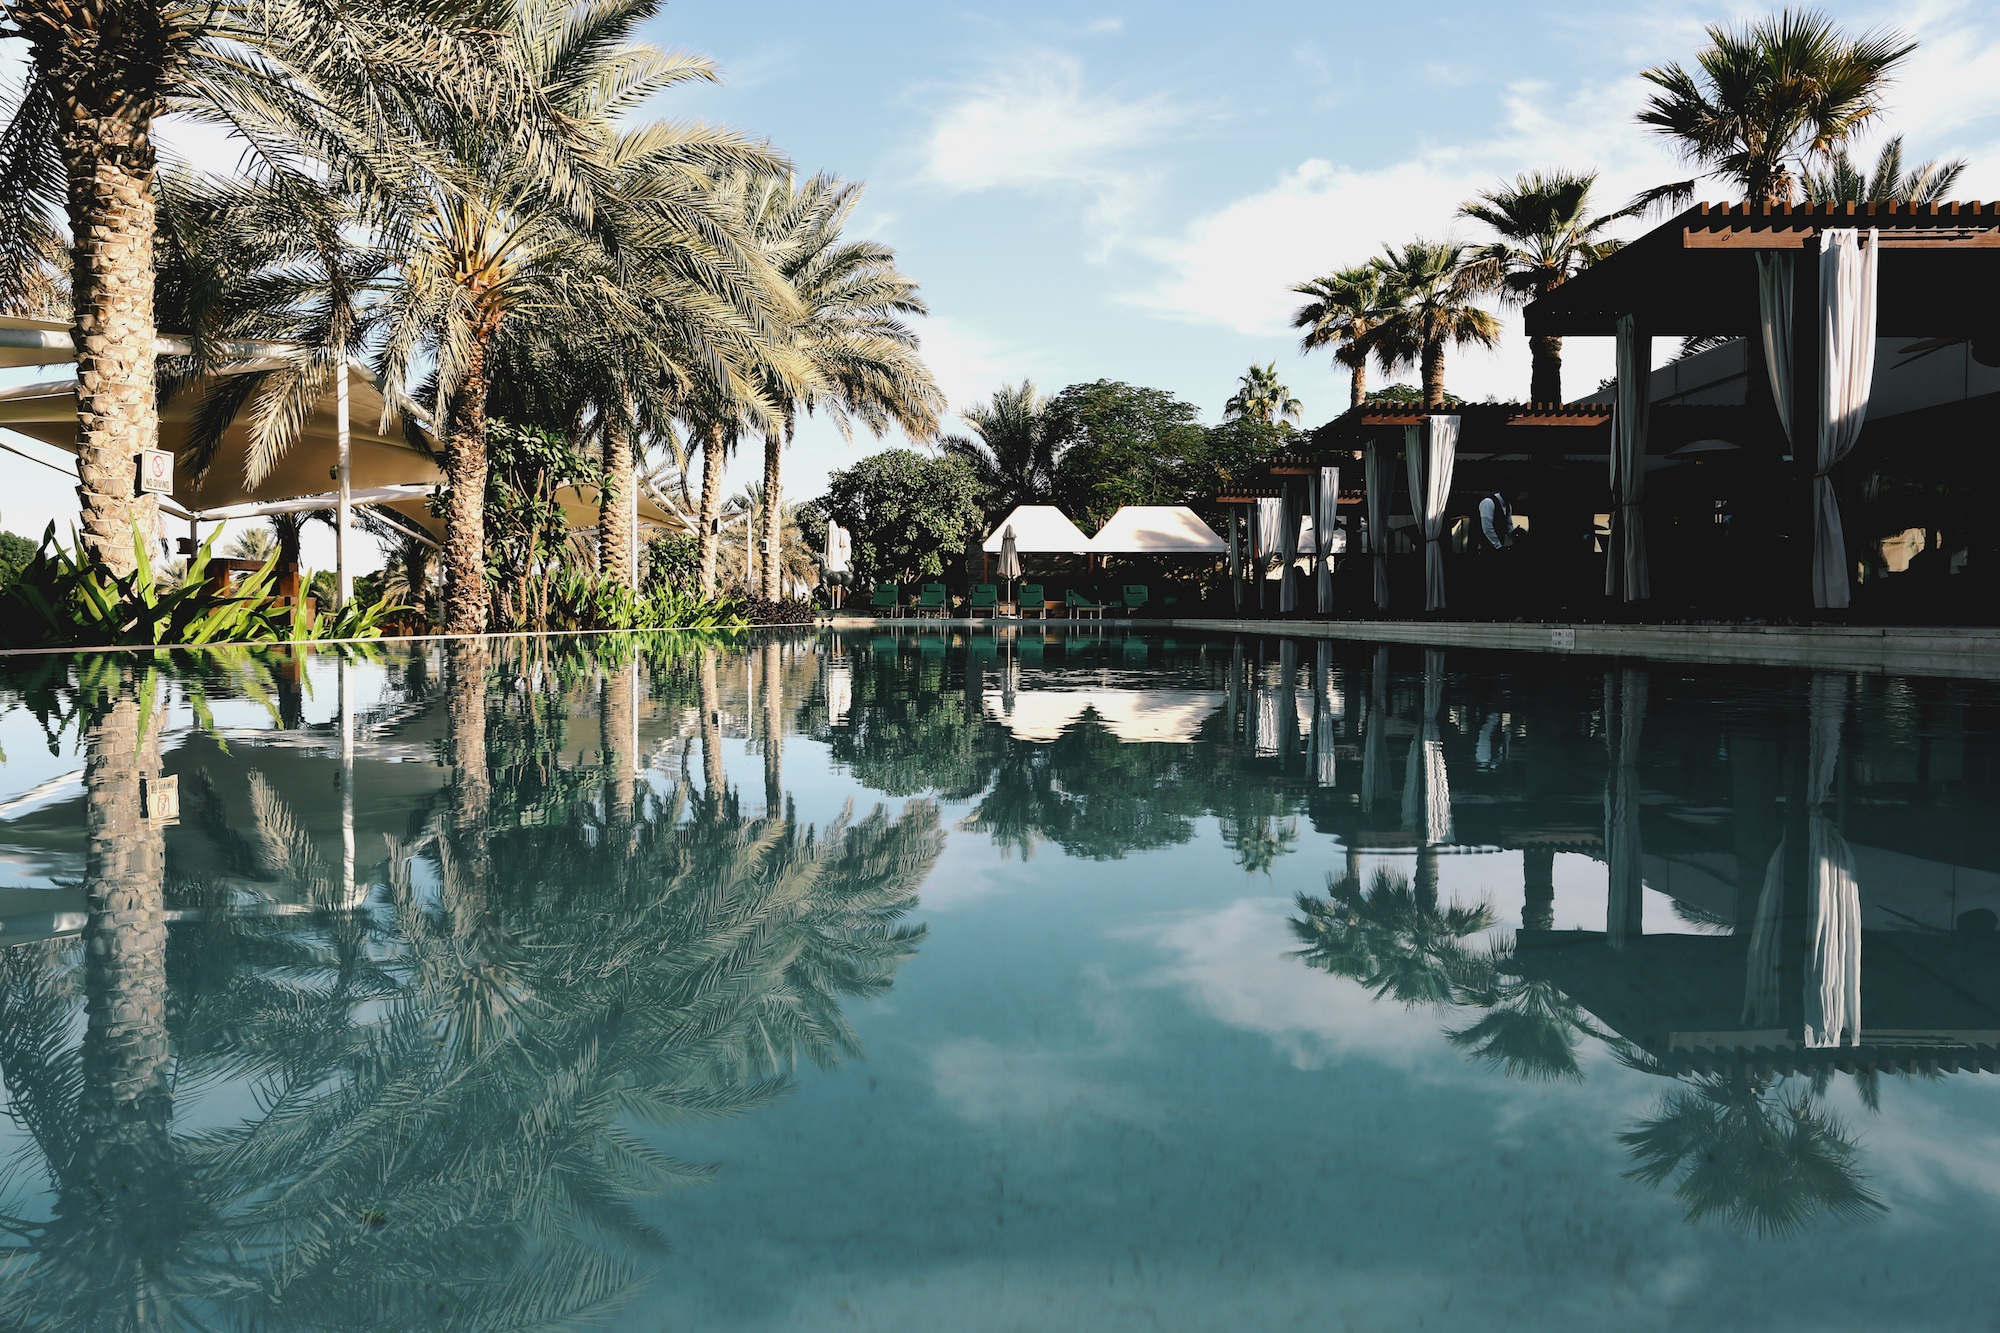 desert palm dubai, luxury stay dubai, travel dubai, hotspot dubai